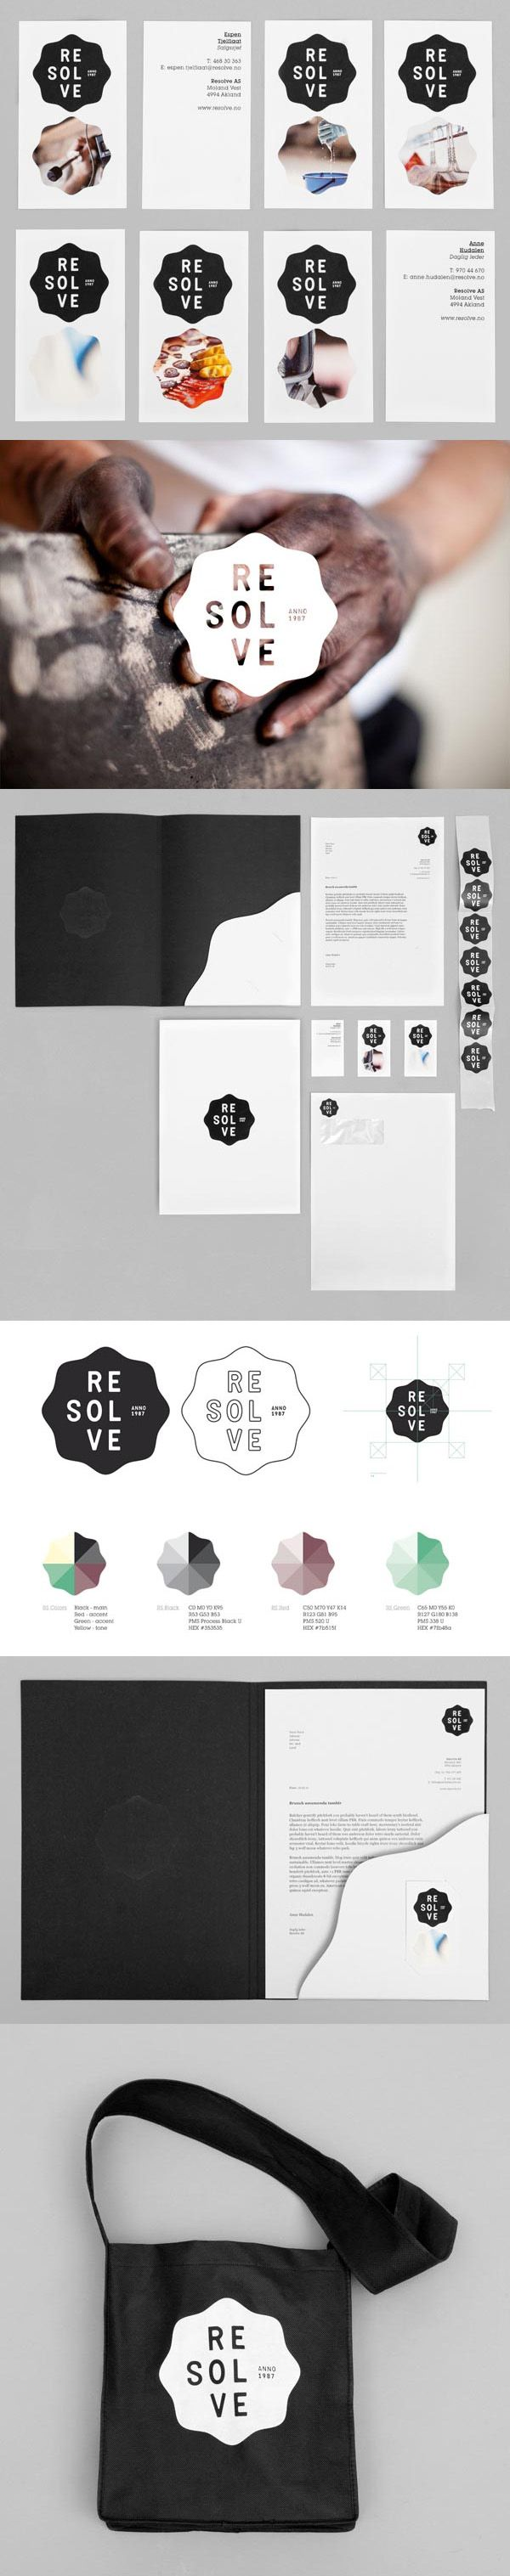 Resolve – Visual Identity Design by Neue | #stationary #corporate #design #corporatedesign #identity #branding #marketing < repinned by www.BlickeDeeler.de | Take a look at www.LogoGestaltung-Hamburg.de